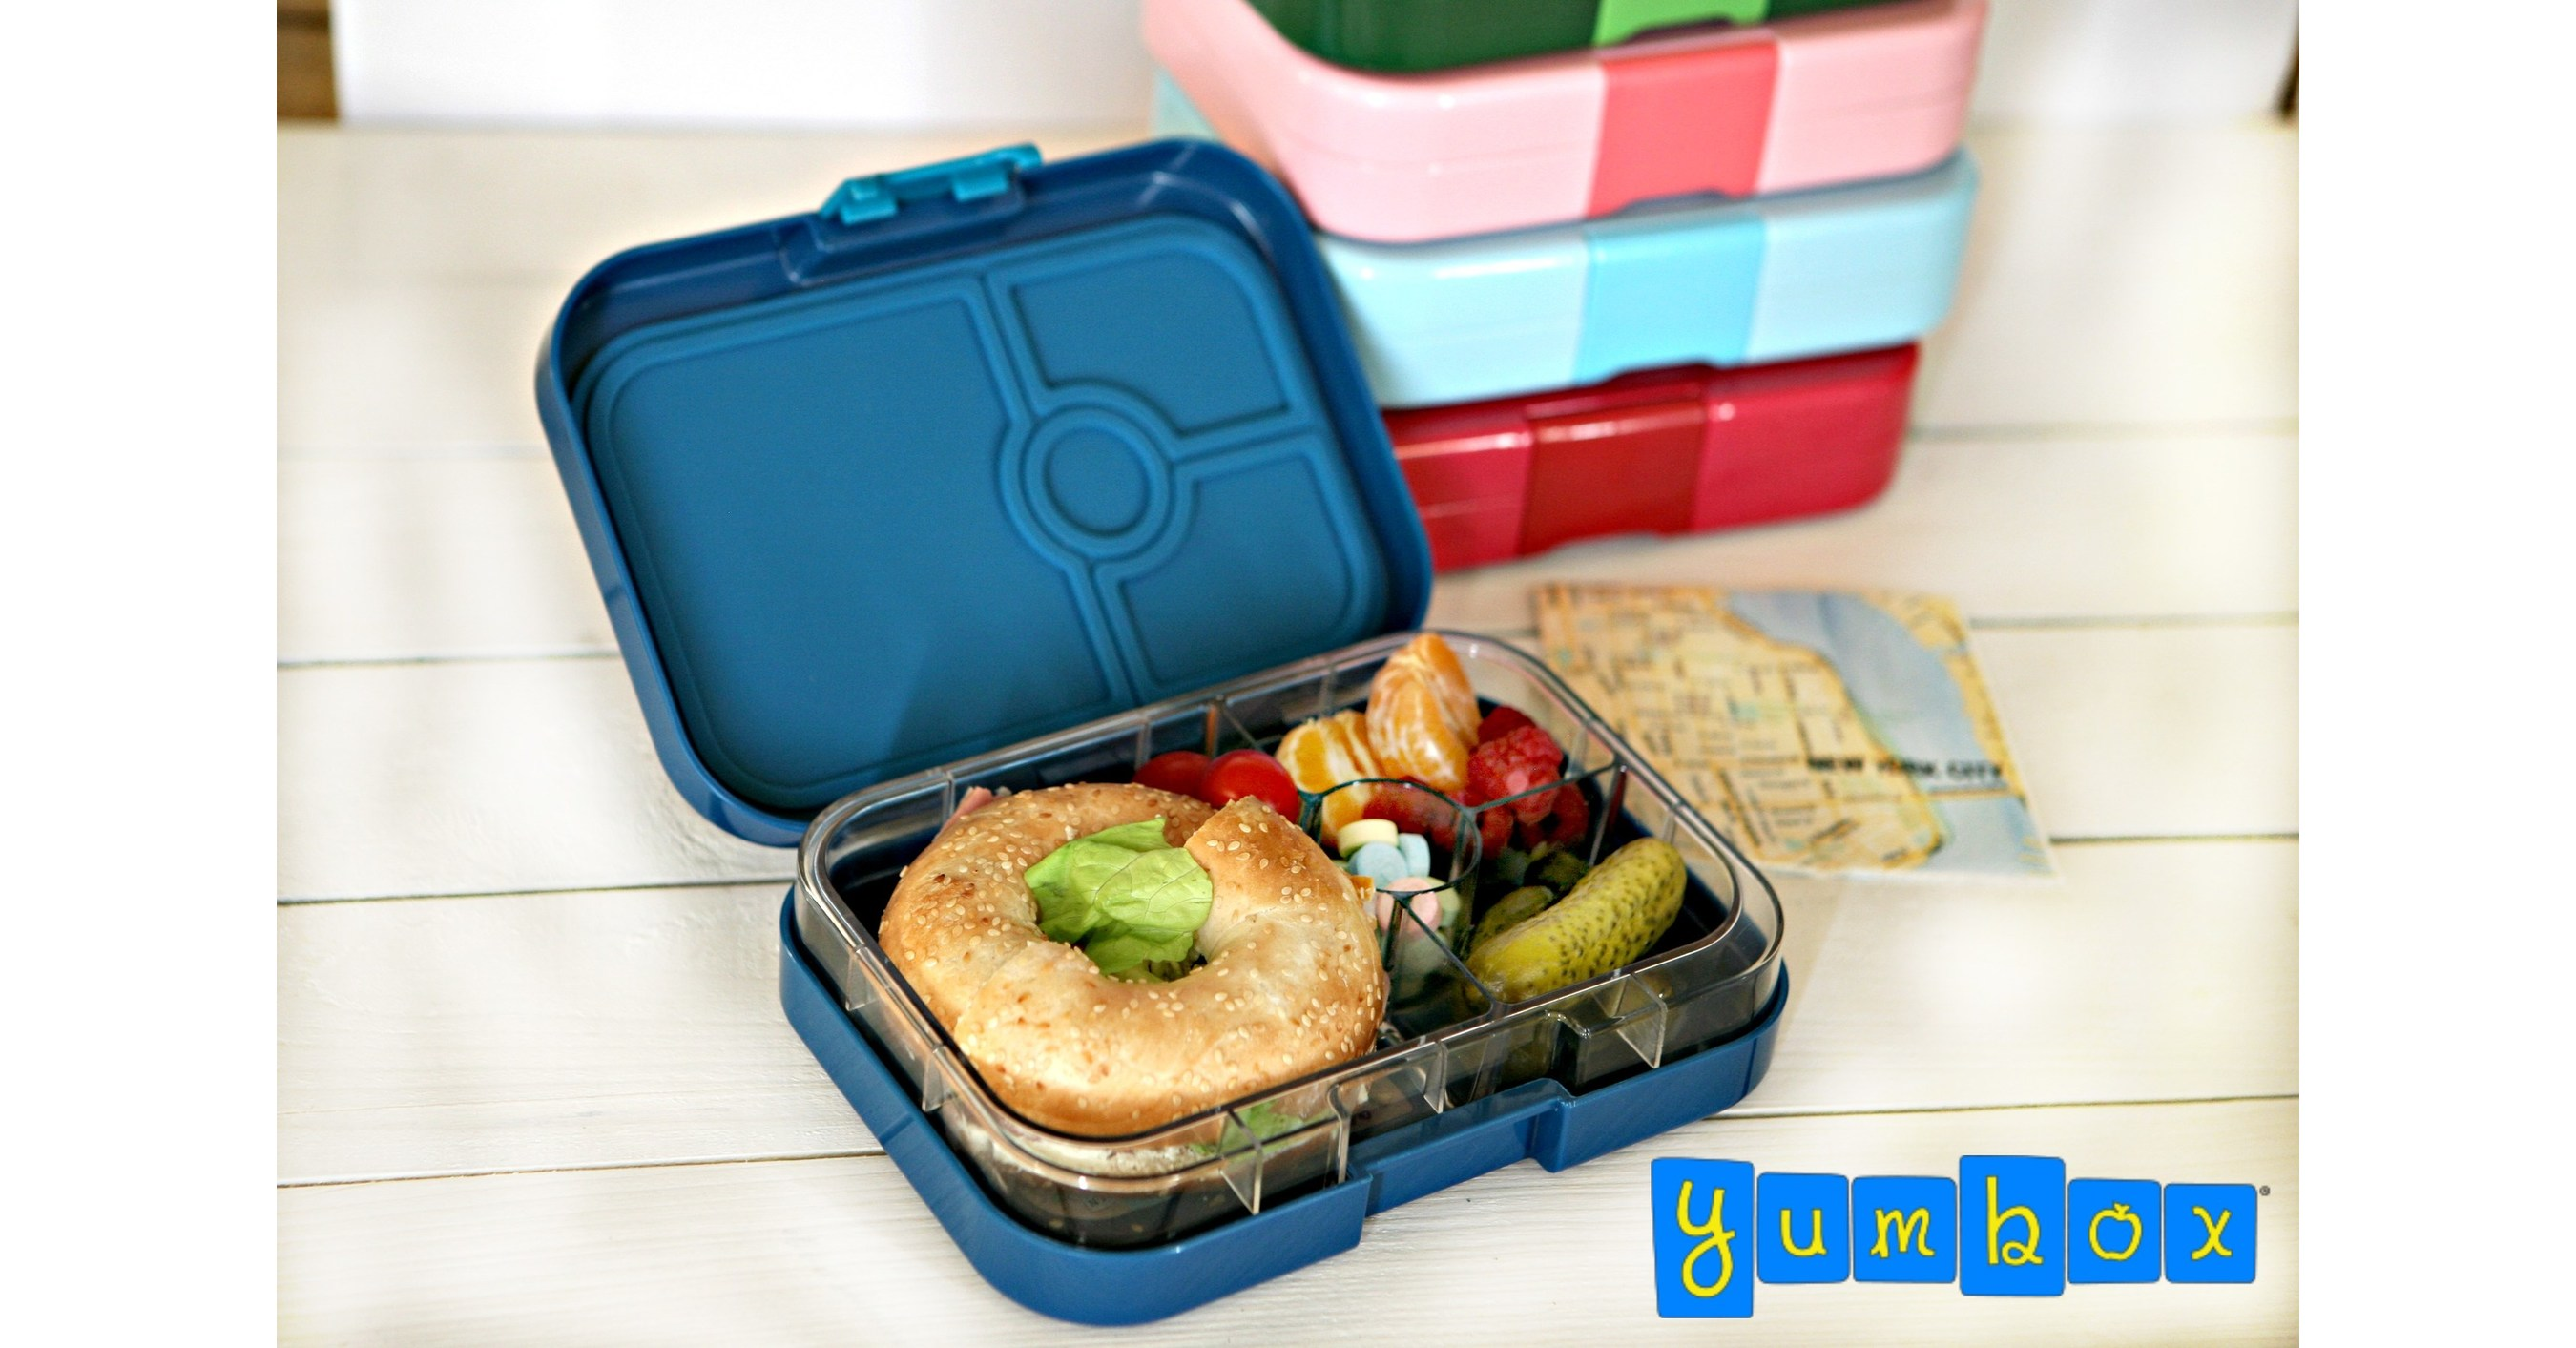 yumbox bento lunch box smart gift idea for the holidays. Black Bedroom Furniture Sets. Home Design Ideas